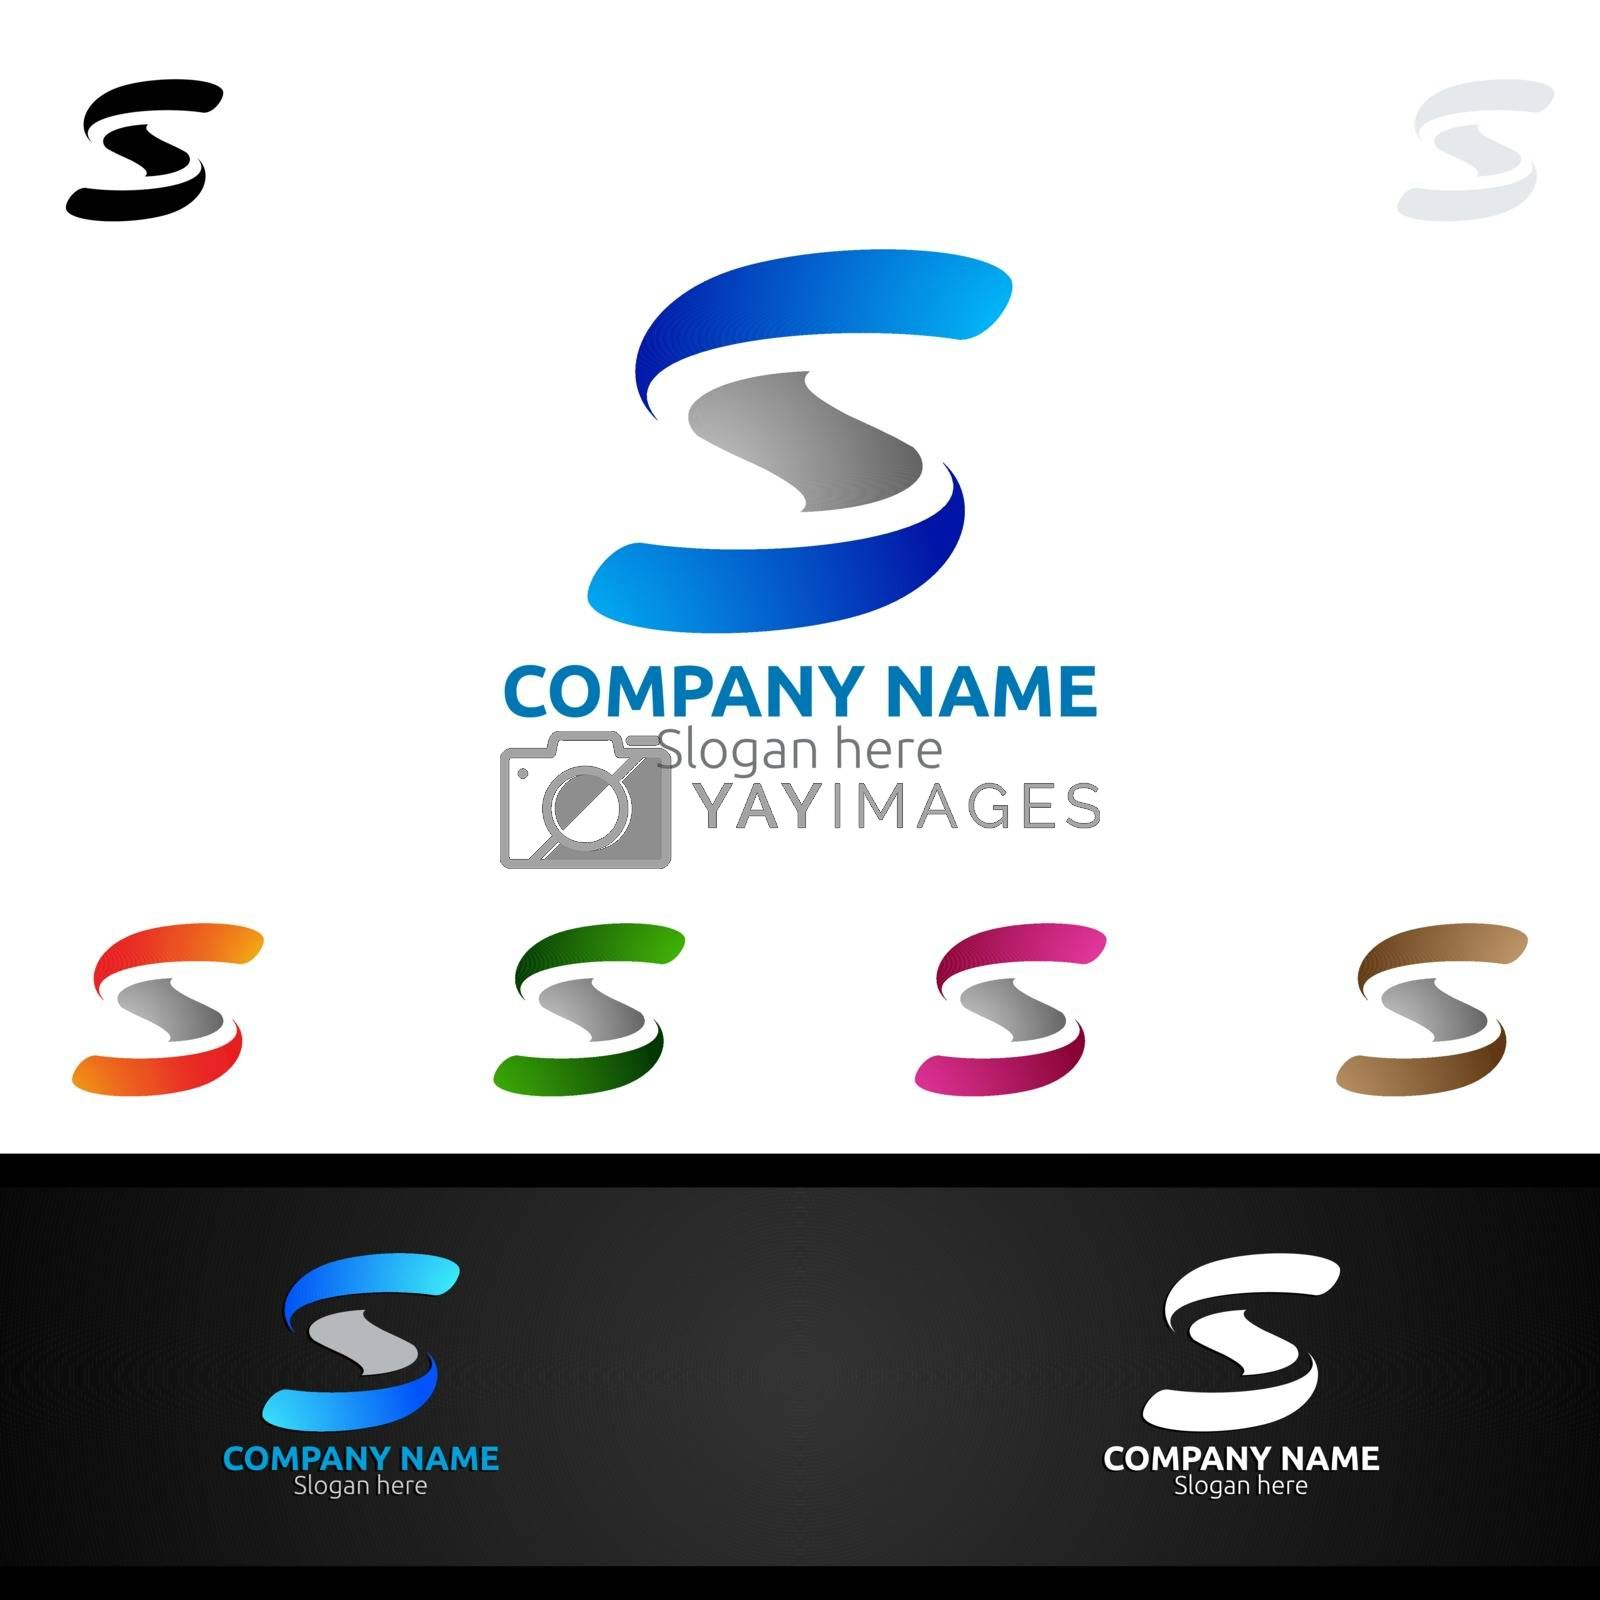 Letter S for Digital Vector Logo, Marketing, Financial, Advisor or Invest Design Icon